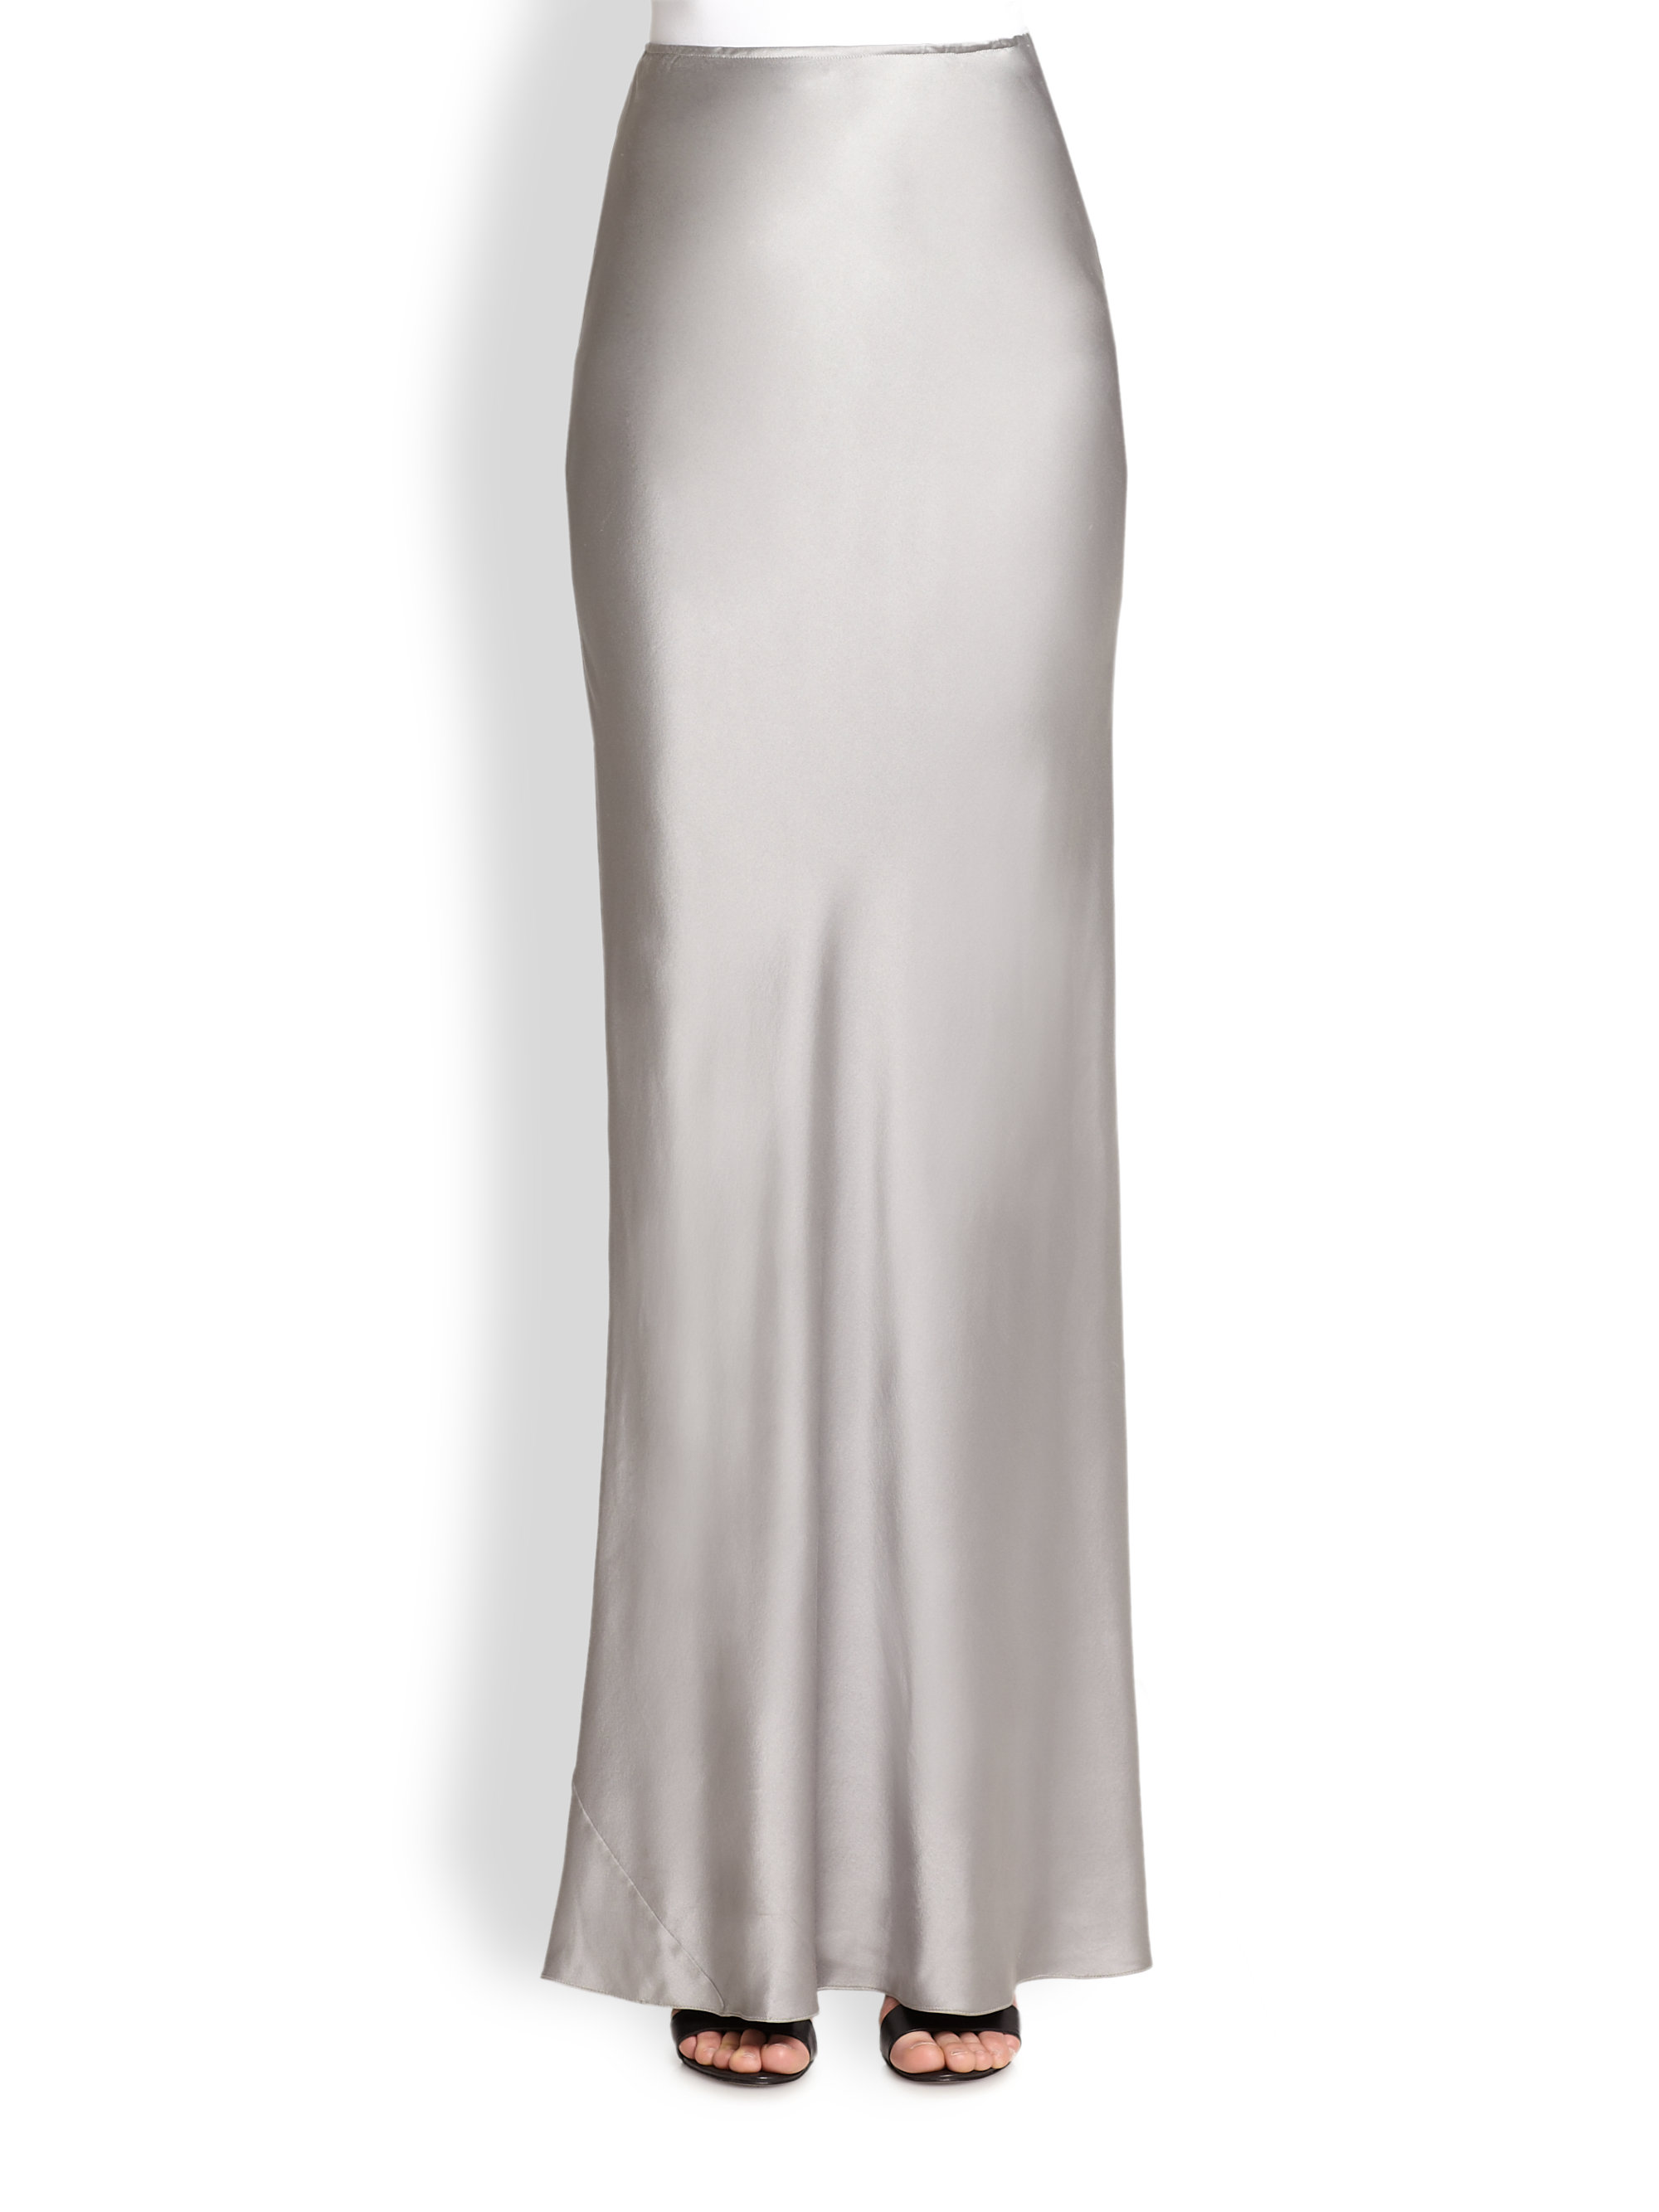 Tess giberson Long Silk Skirt in Metallic | Lyst